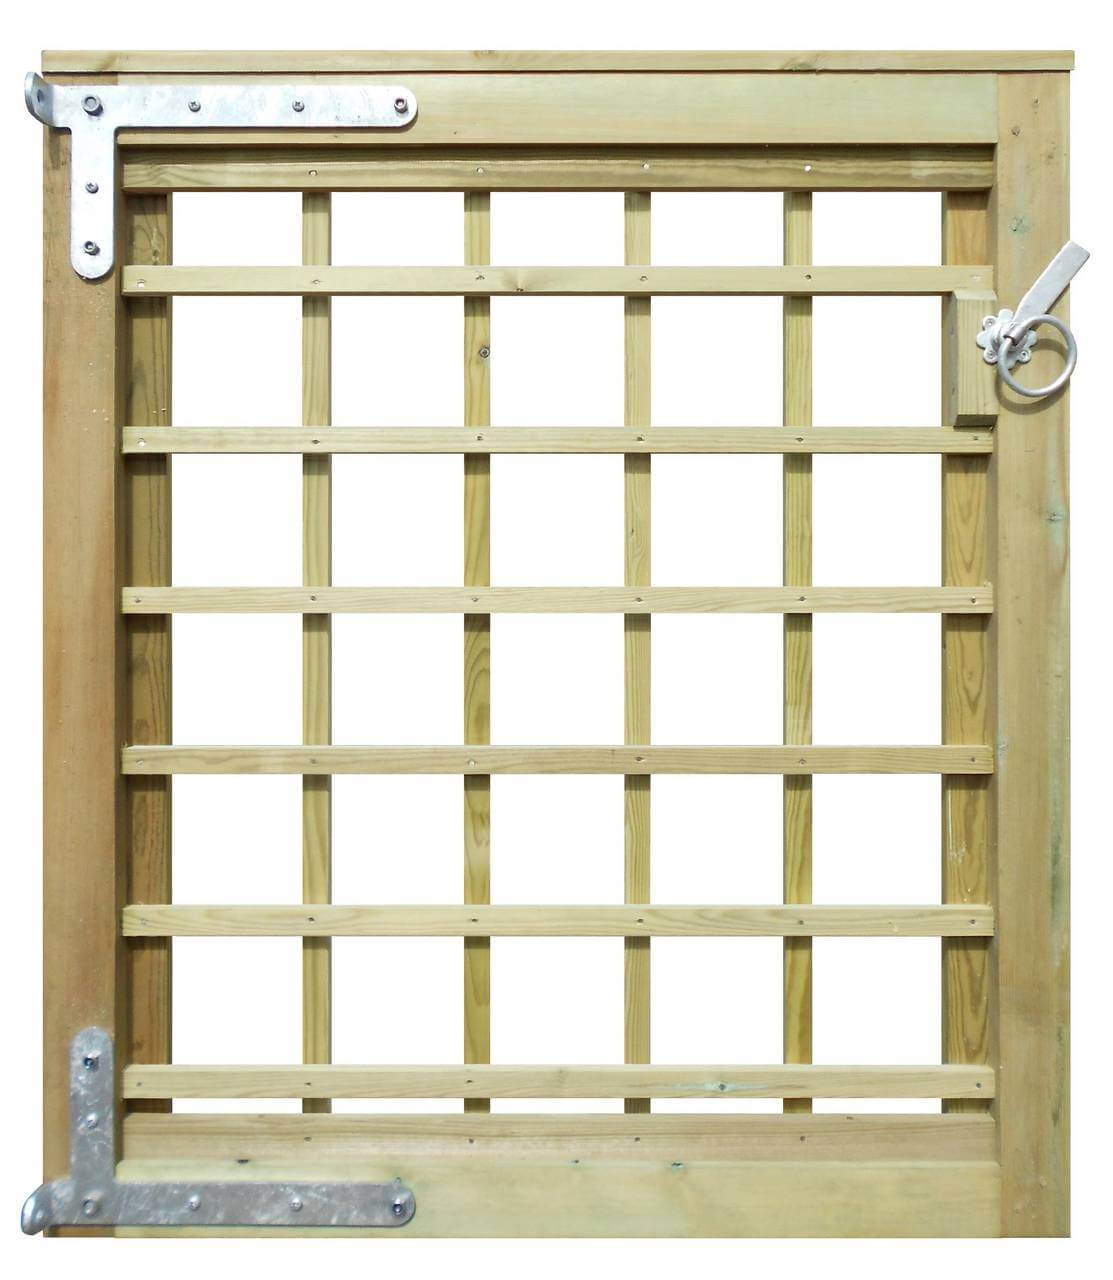 639300 1150 High std Trellis Gate back